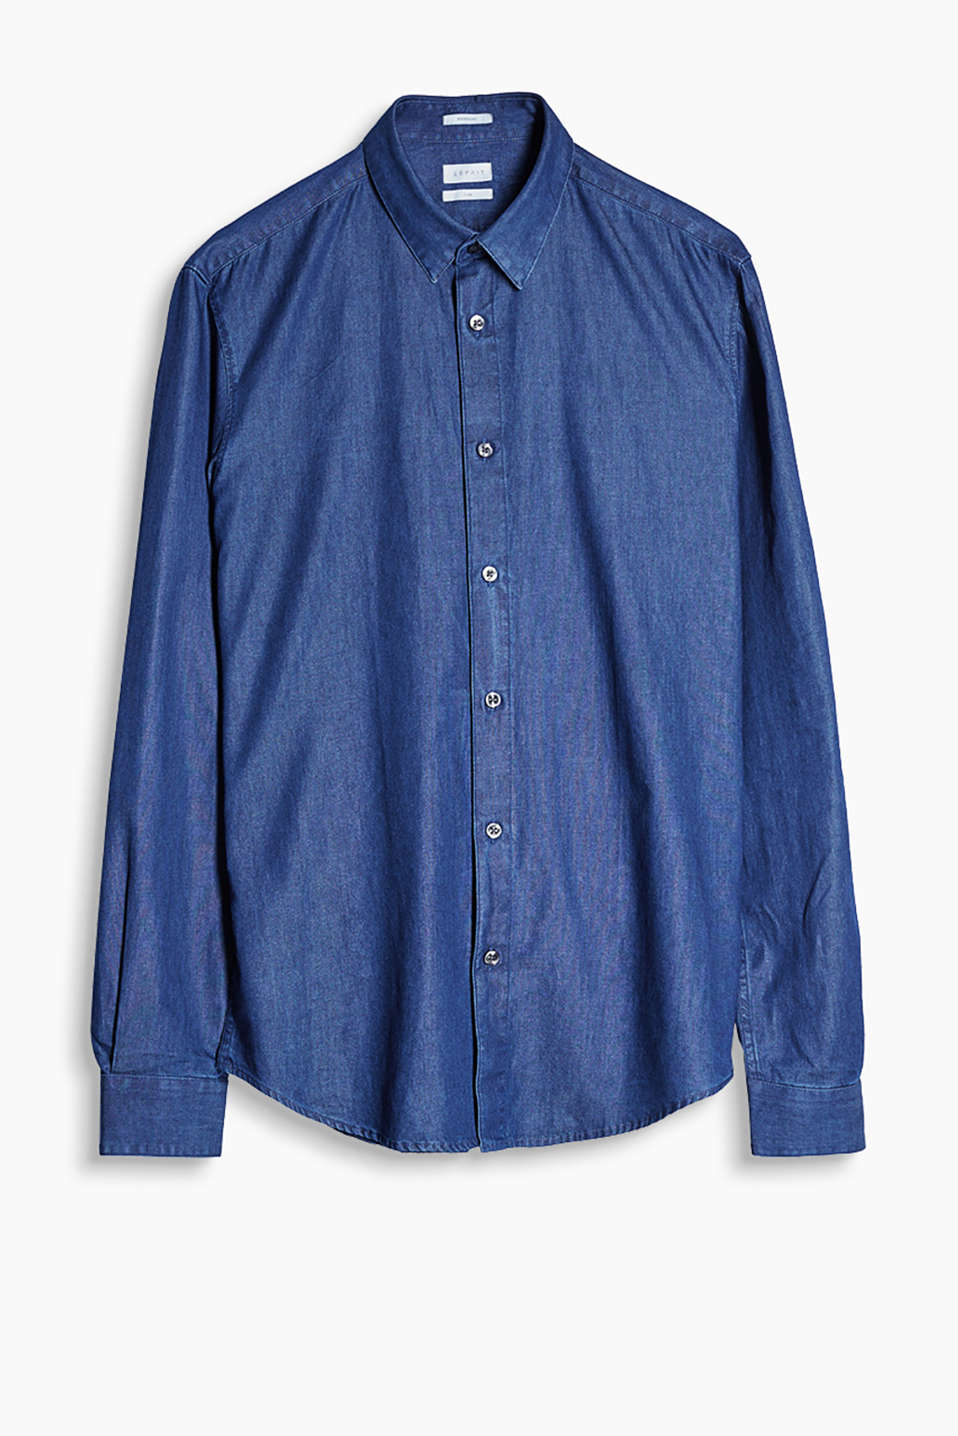 """The Wardrobe"": Shirt with a new Kent collar and high-quality indigo dye"